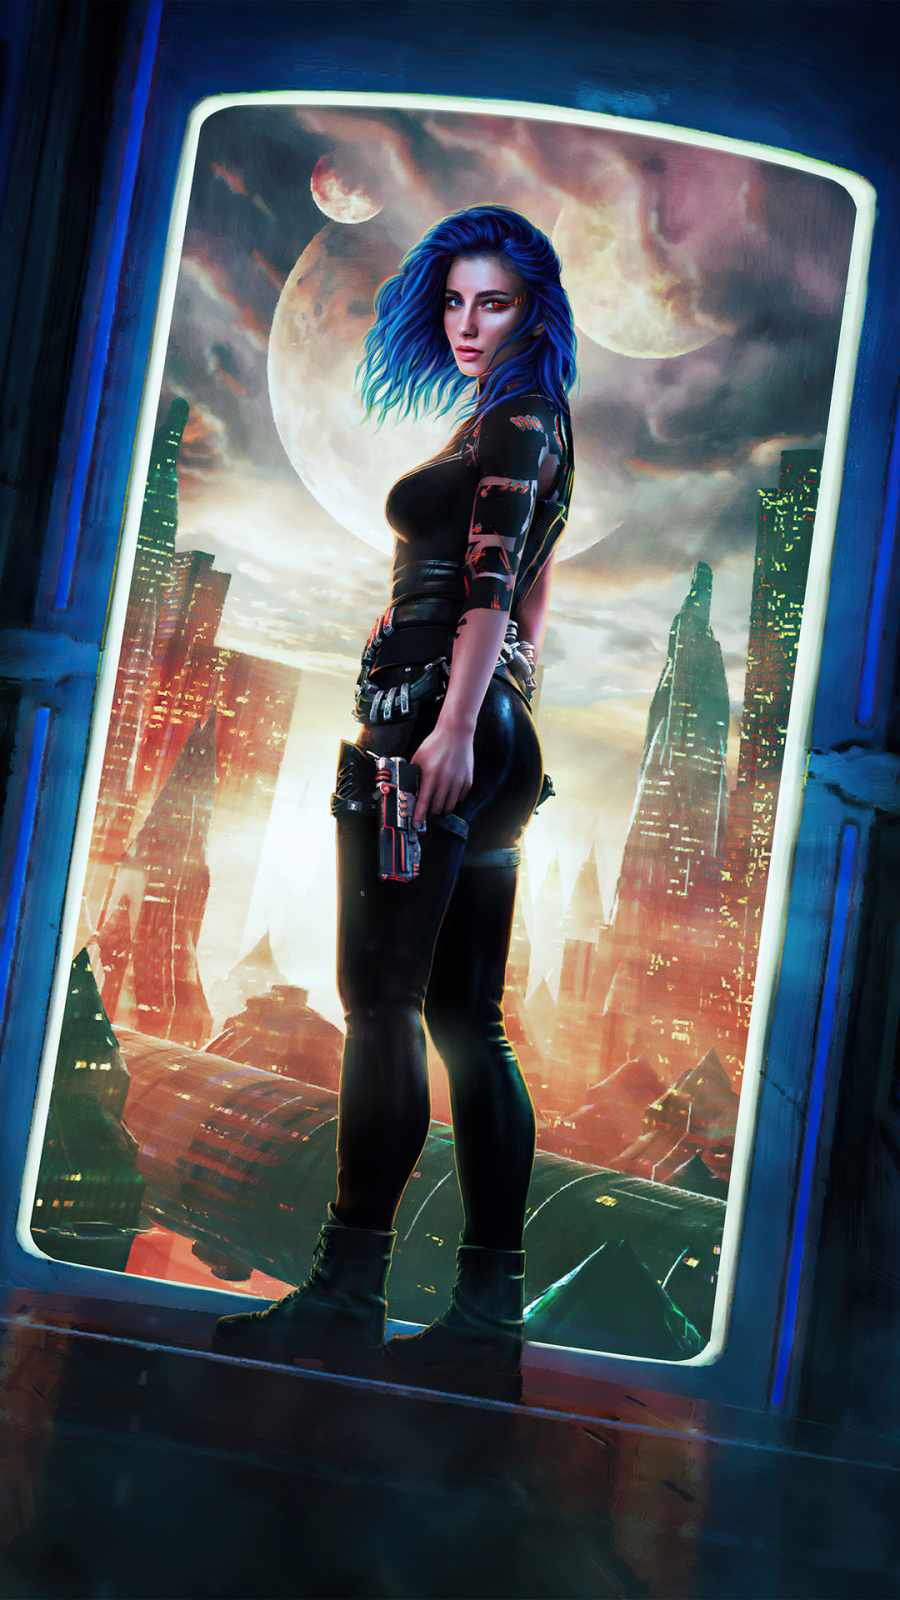 Blue hair girl scifi city with guns in hand